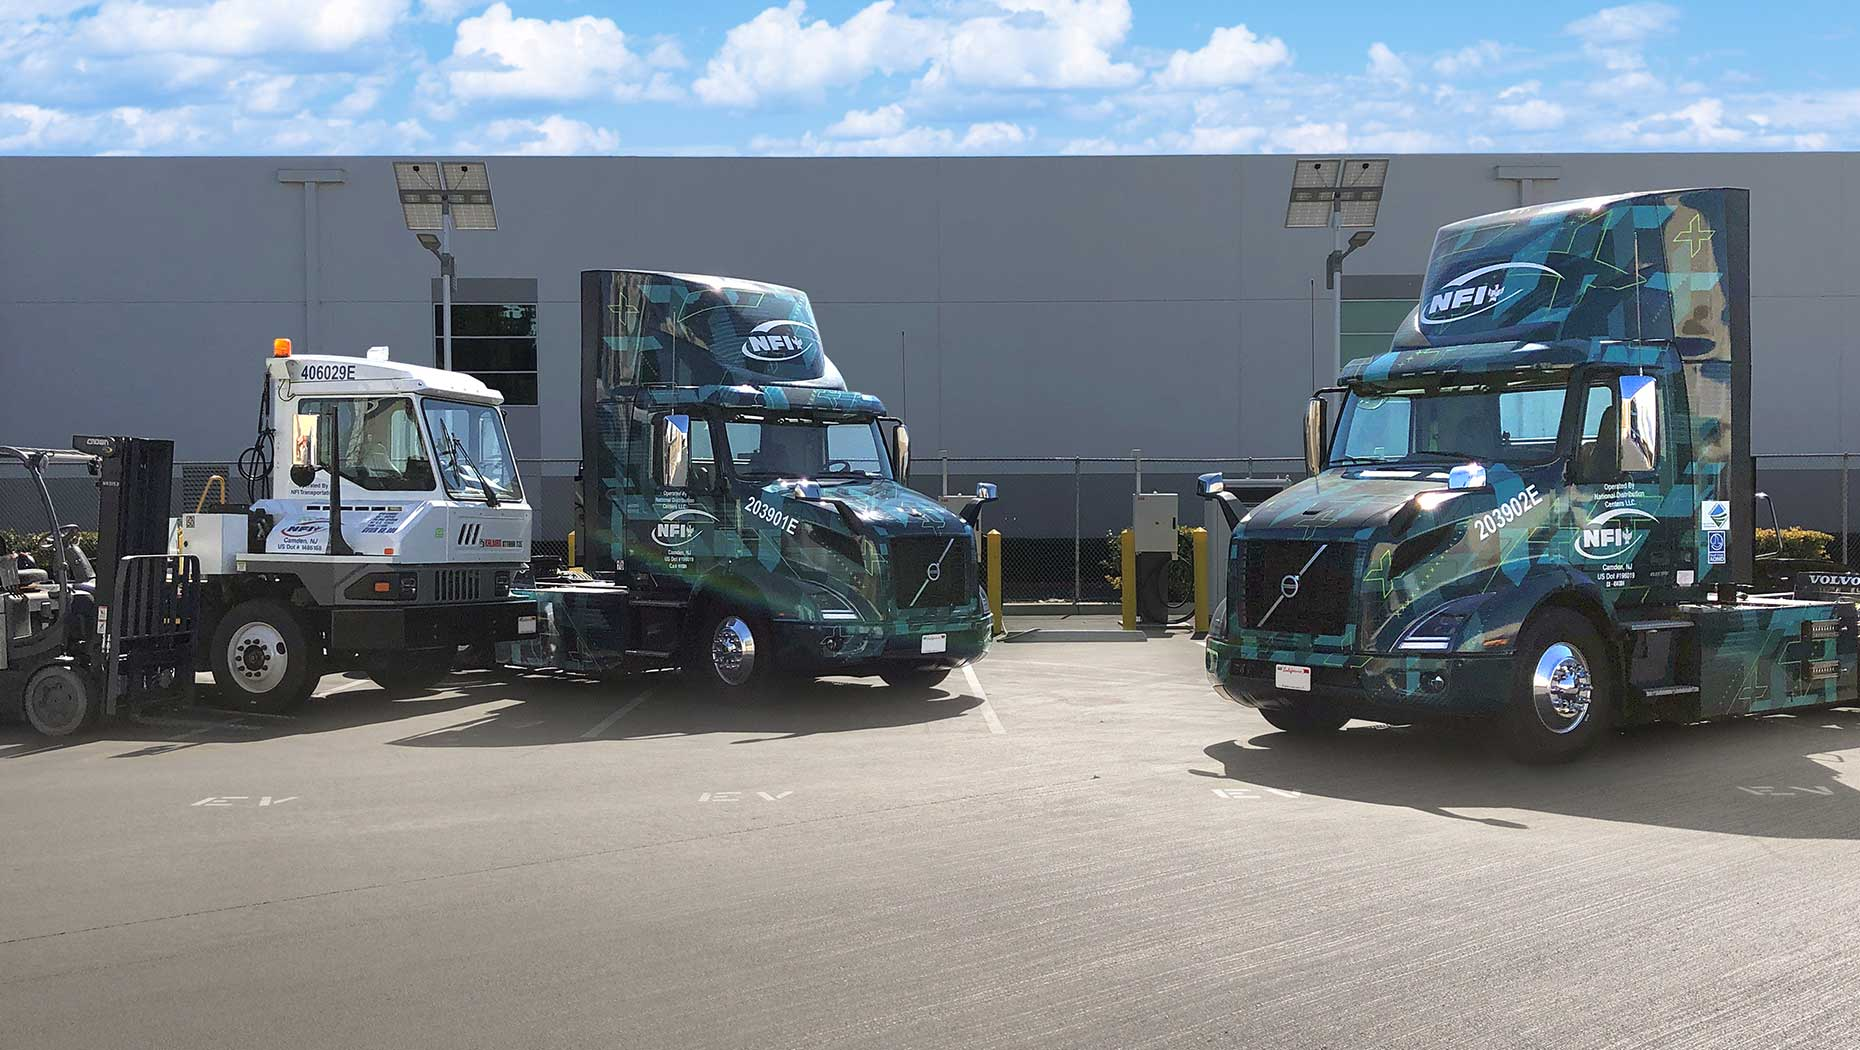 Volvo Trucks customer NFI achieves a major electrification milestone at its Chino, California location including adding two Volvo VNR Electrics to its fleet along with utilizing electric yard trucks and forklifts